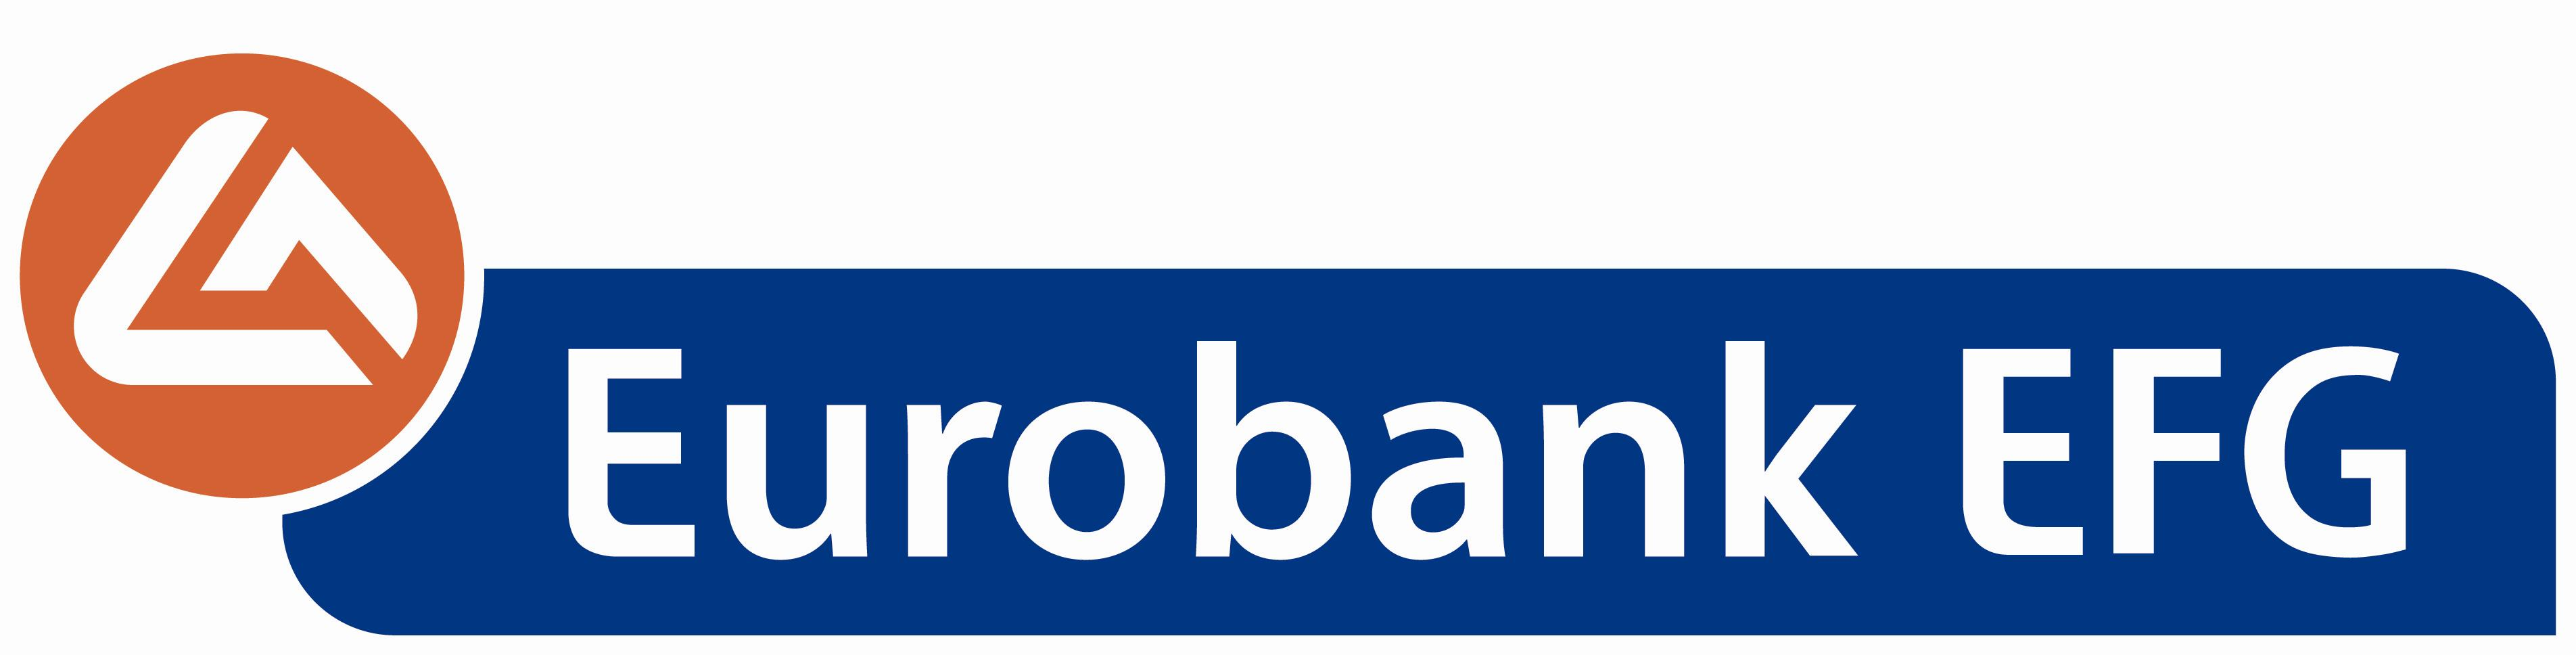 Eurobank cleaning services.